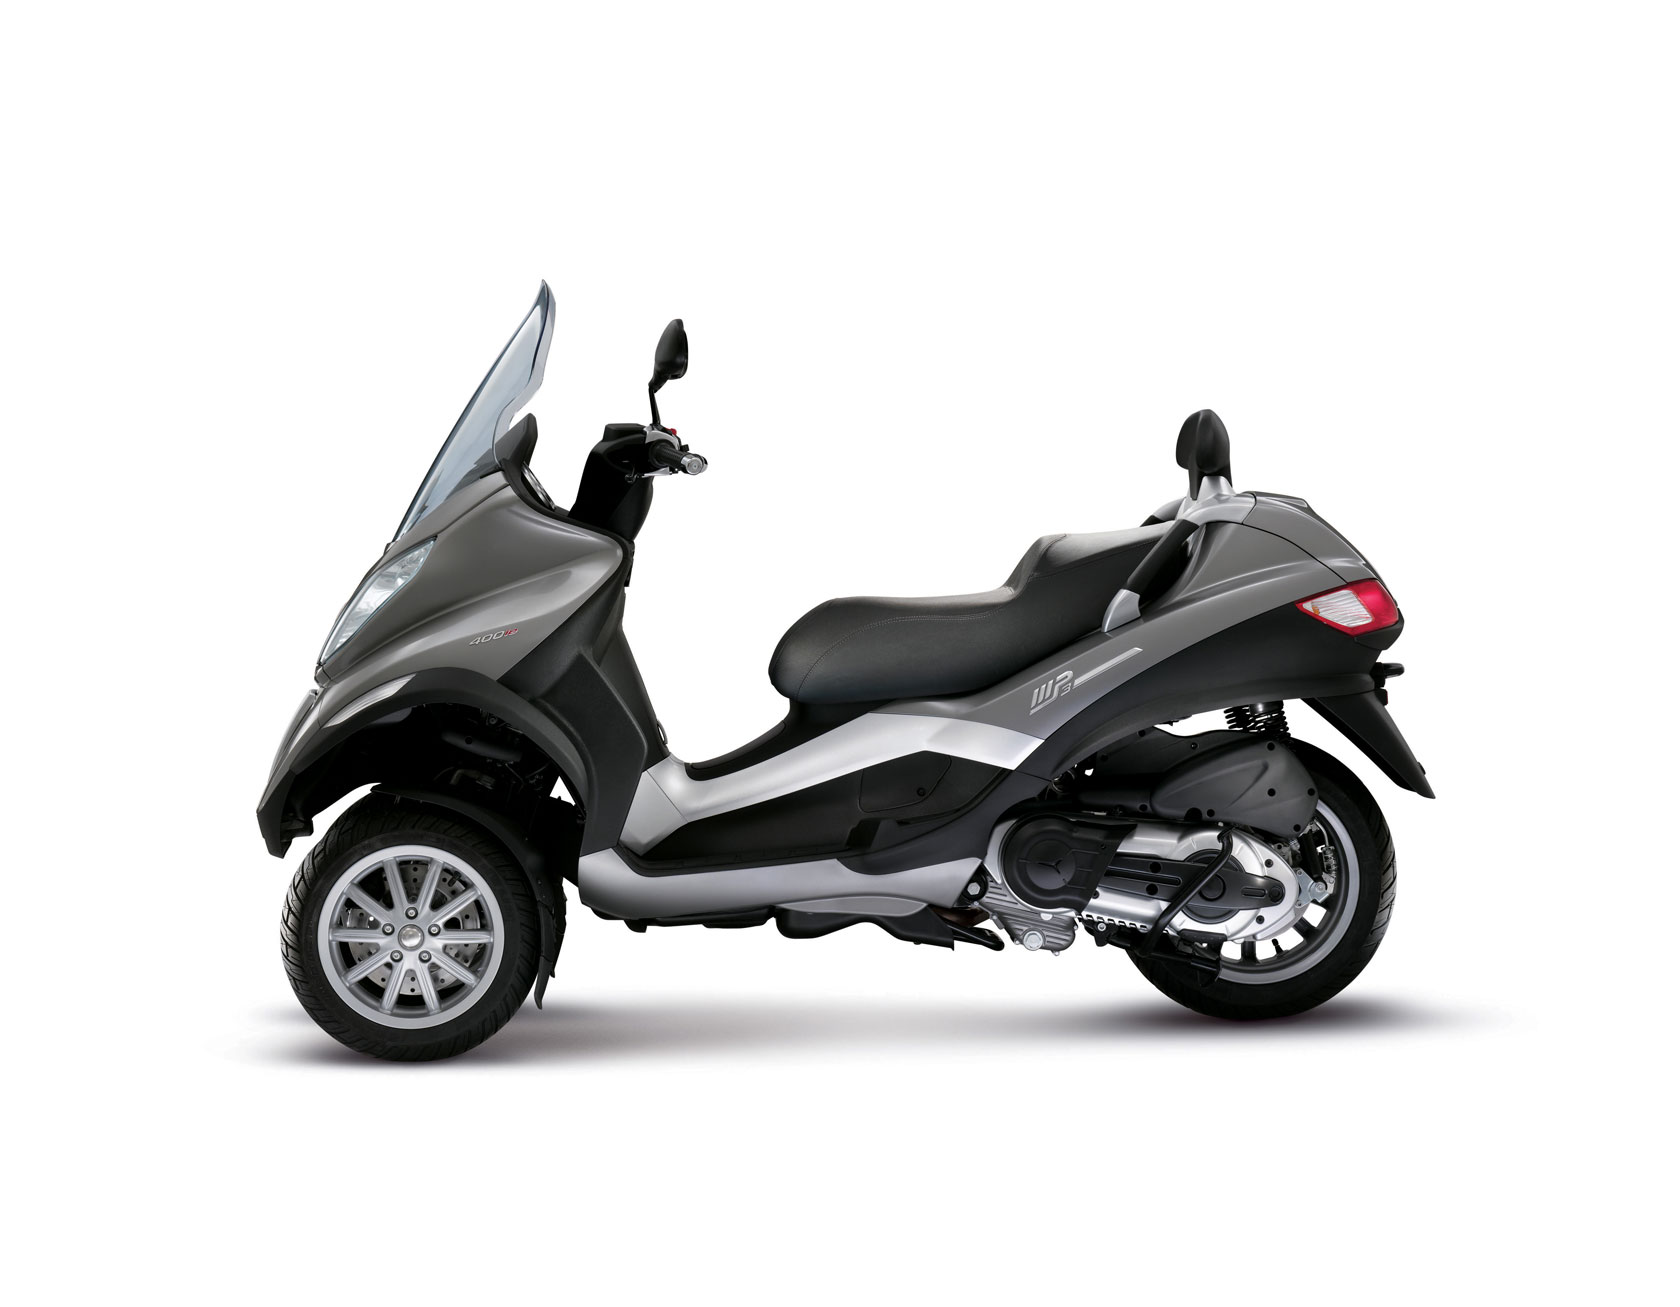 piaggio mp3 400 specs - 2010, 2011 - autoevolution